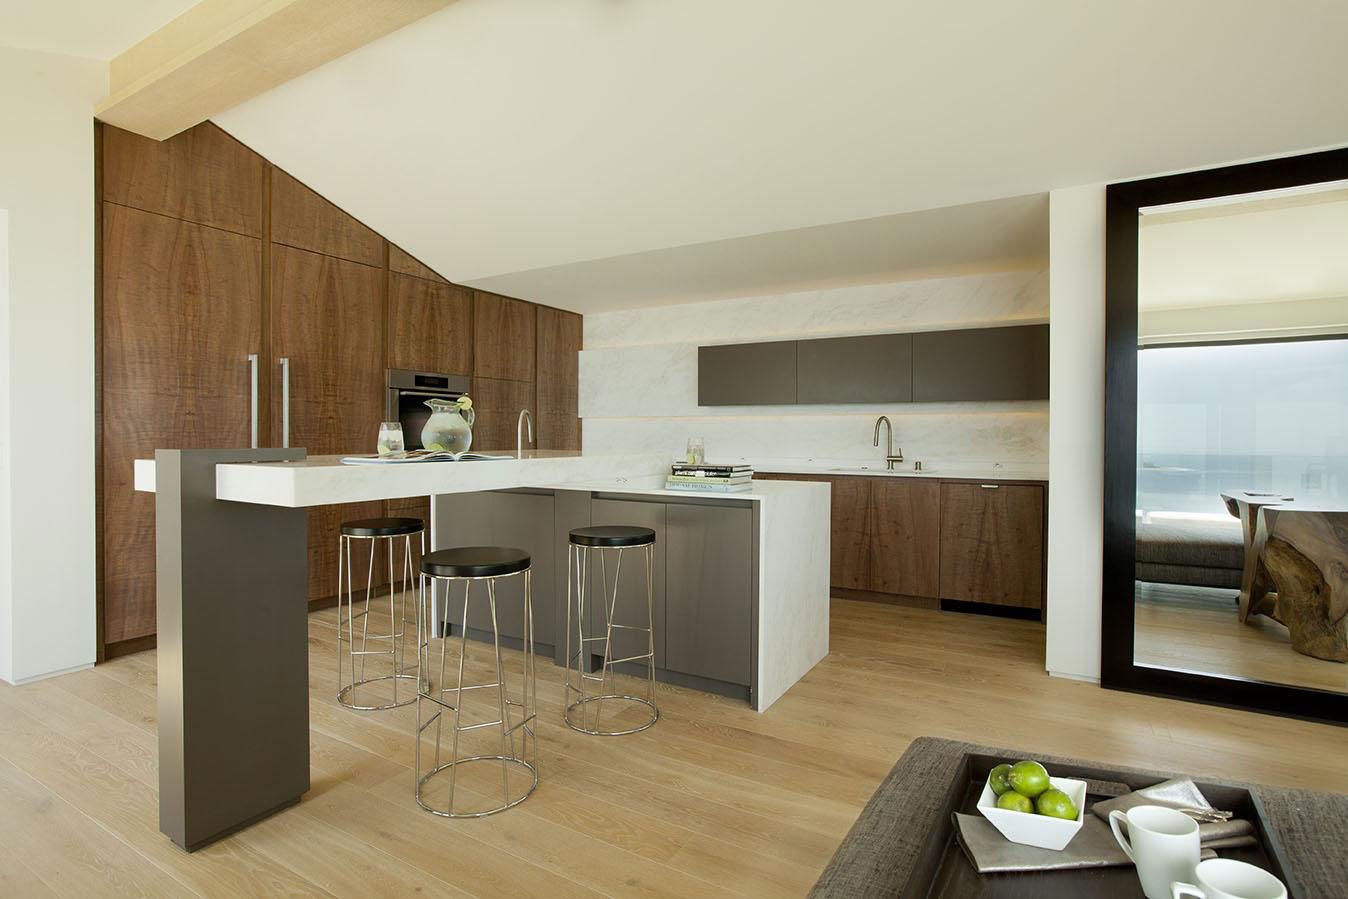 Kitchen, Breakfast Bar, House in Pacific Palisades, Los Angeles